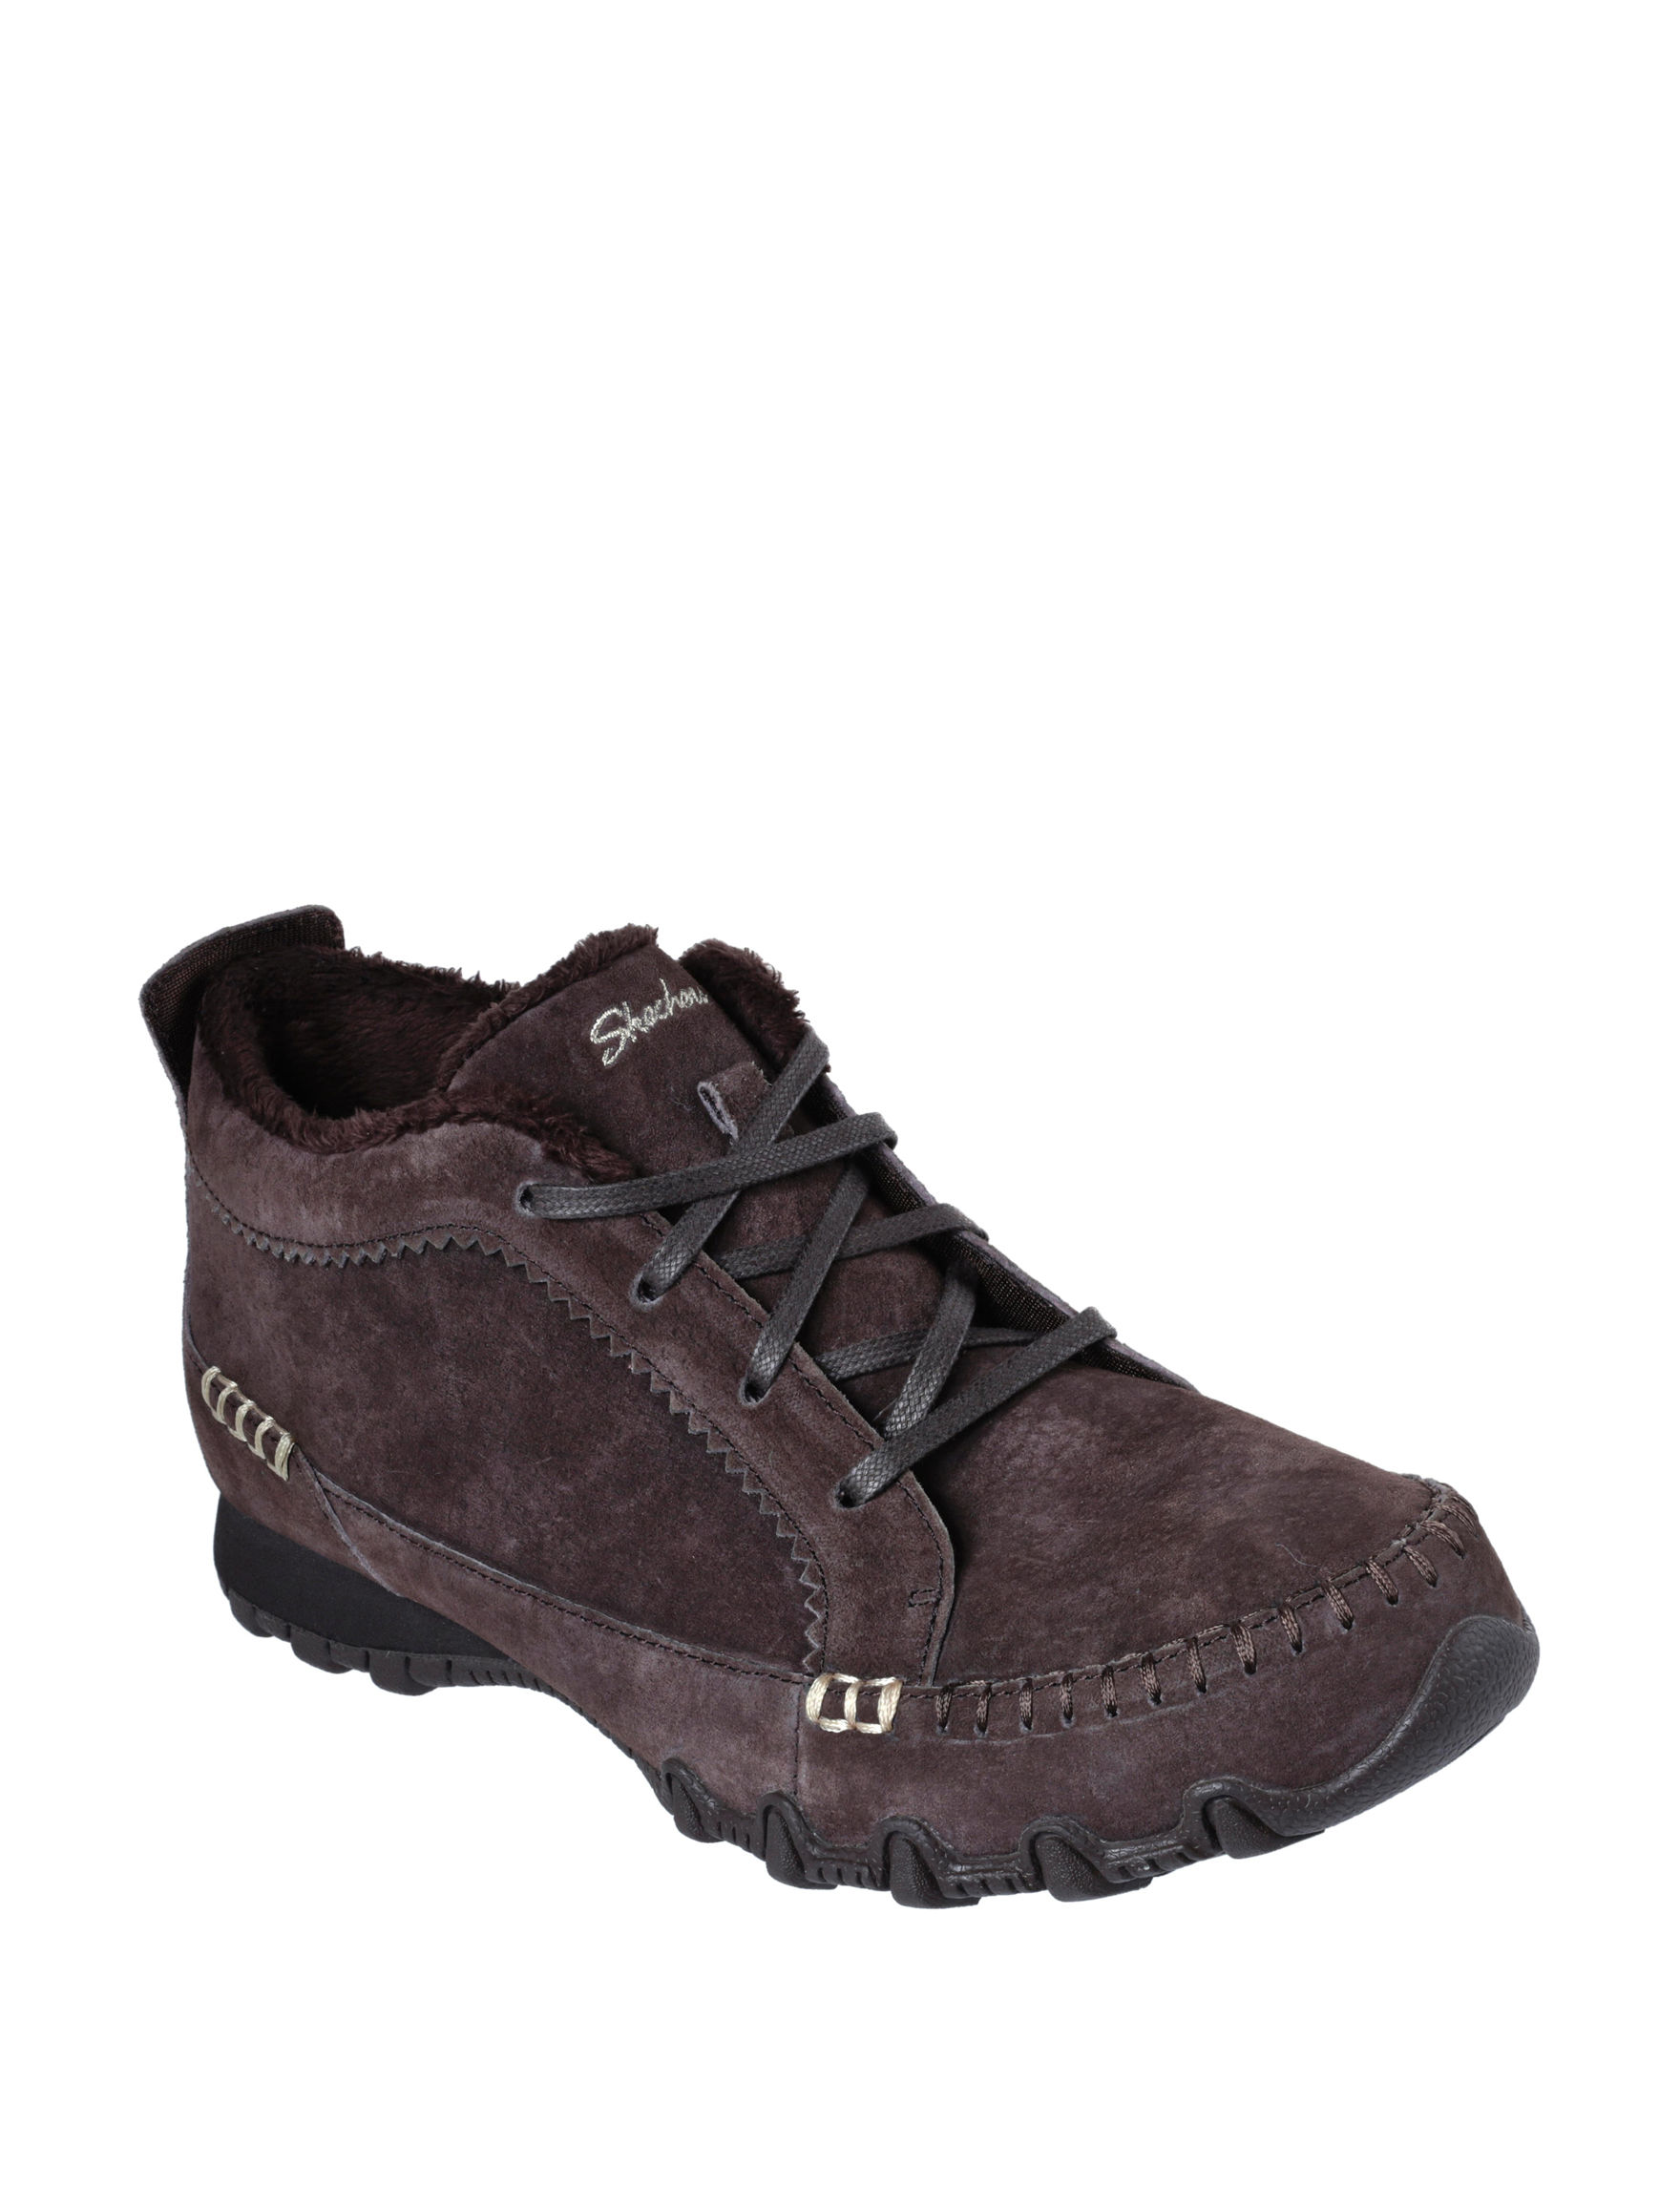 Skechers Brown Hiking Boots